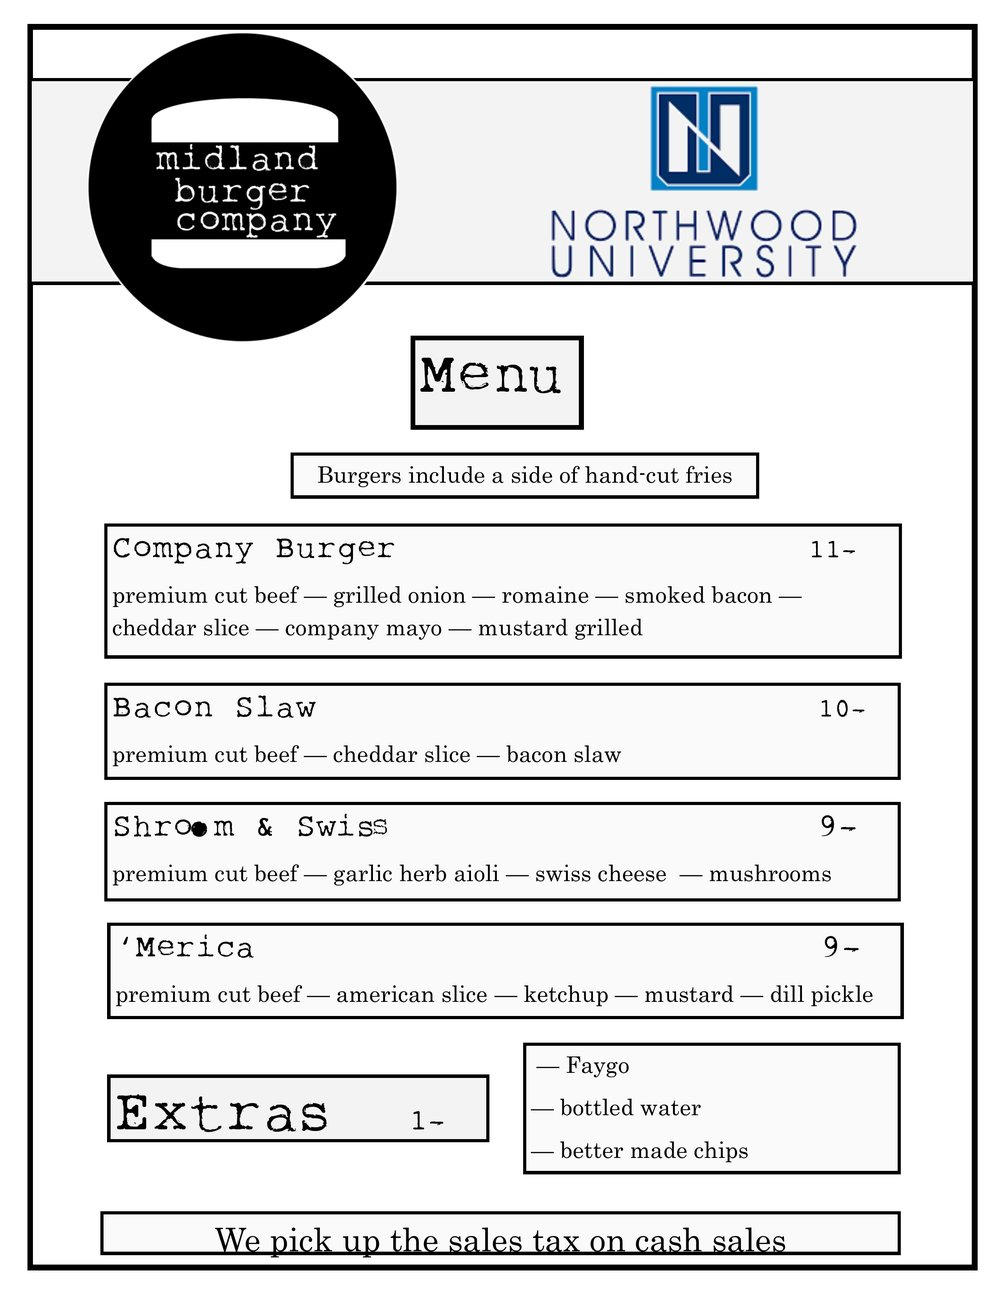 Northwood Menu.jpg